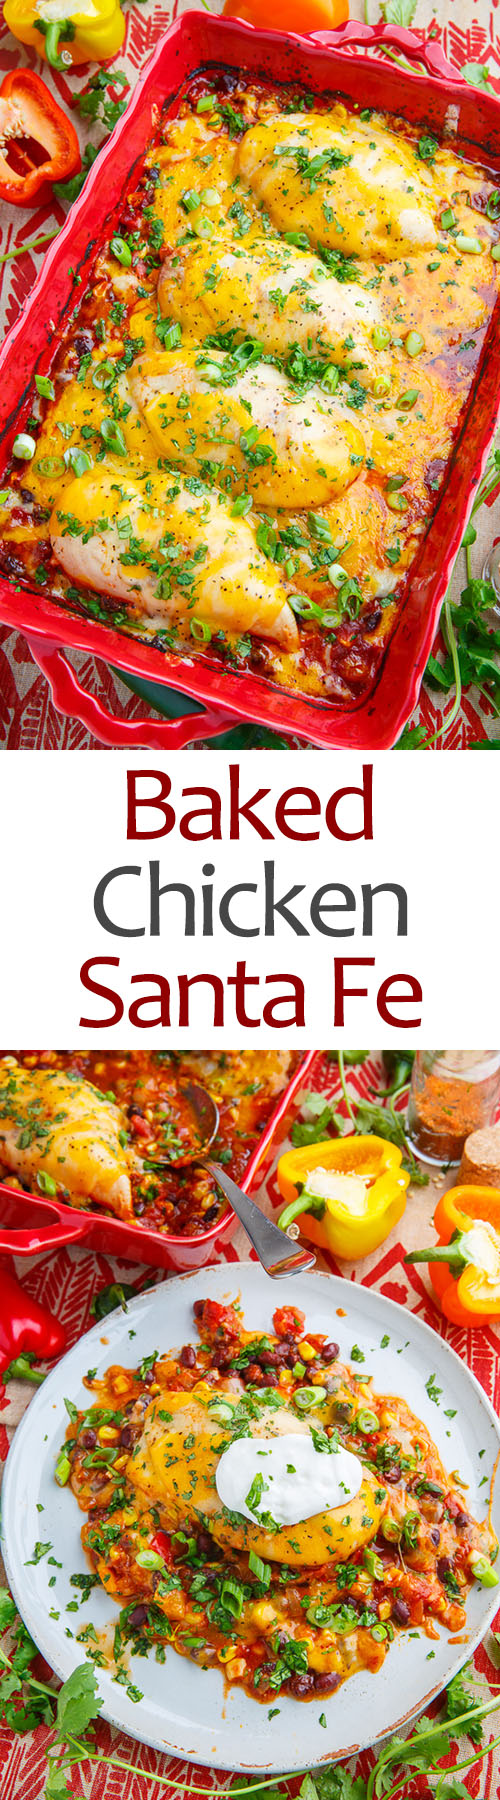 Baked Chicken Santa Fe